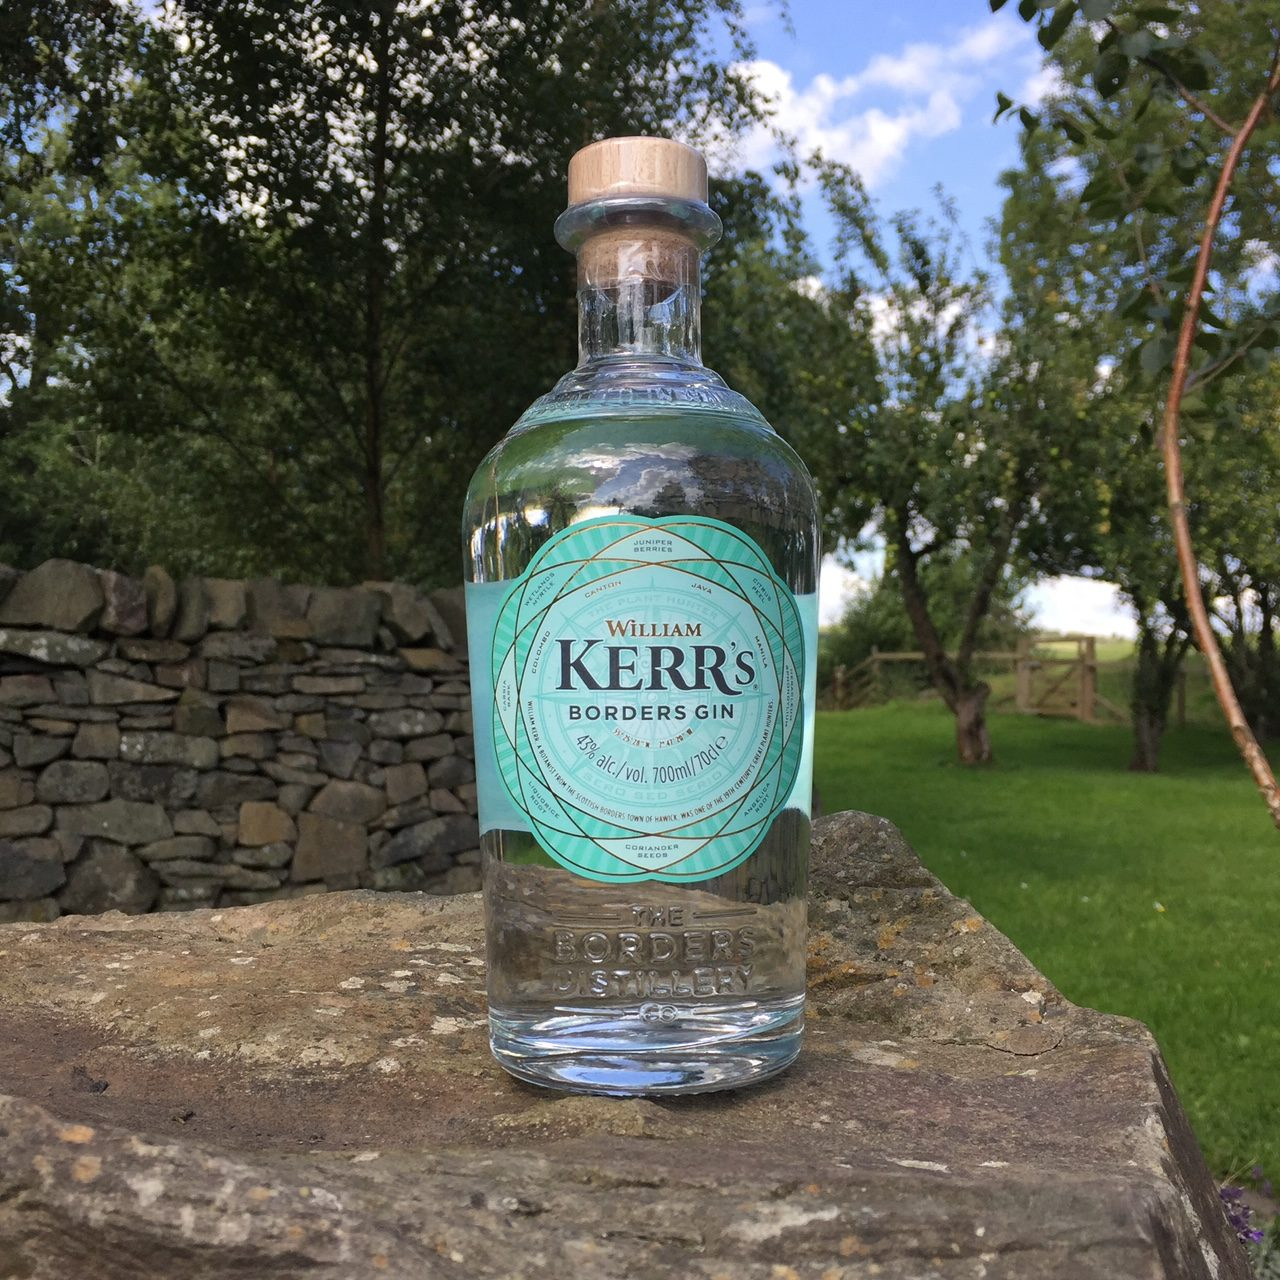 William Kerr's craft gin from Borders Distillery